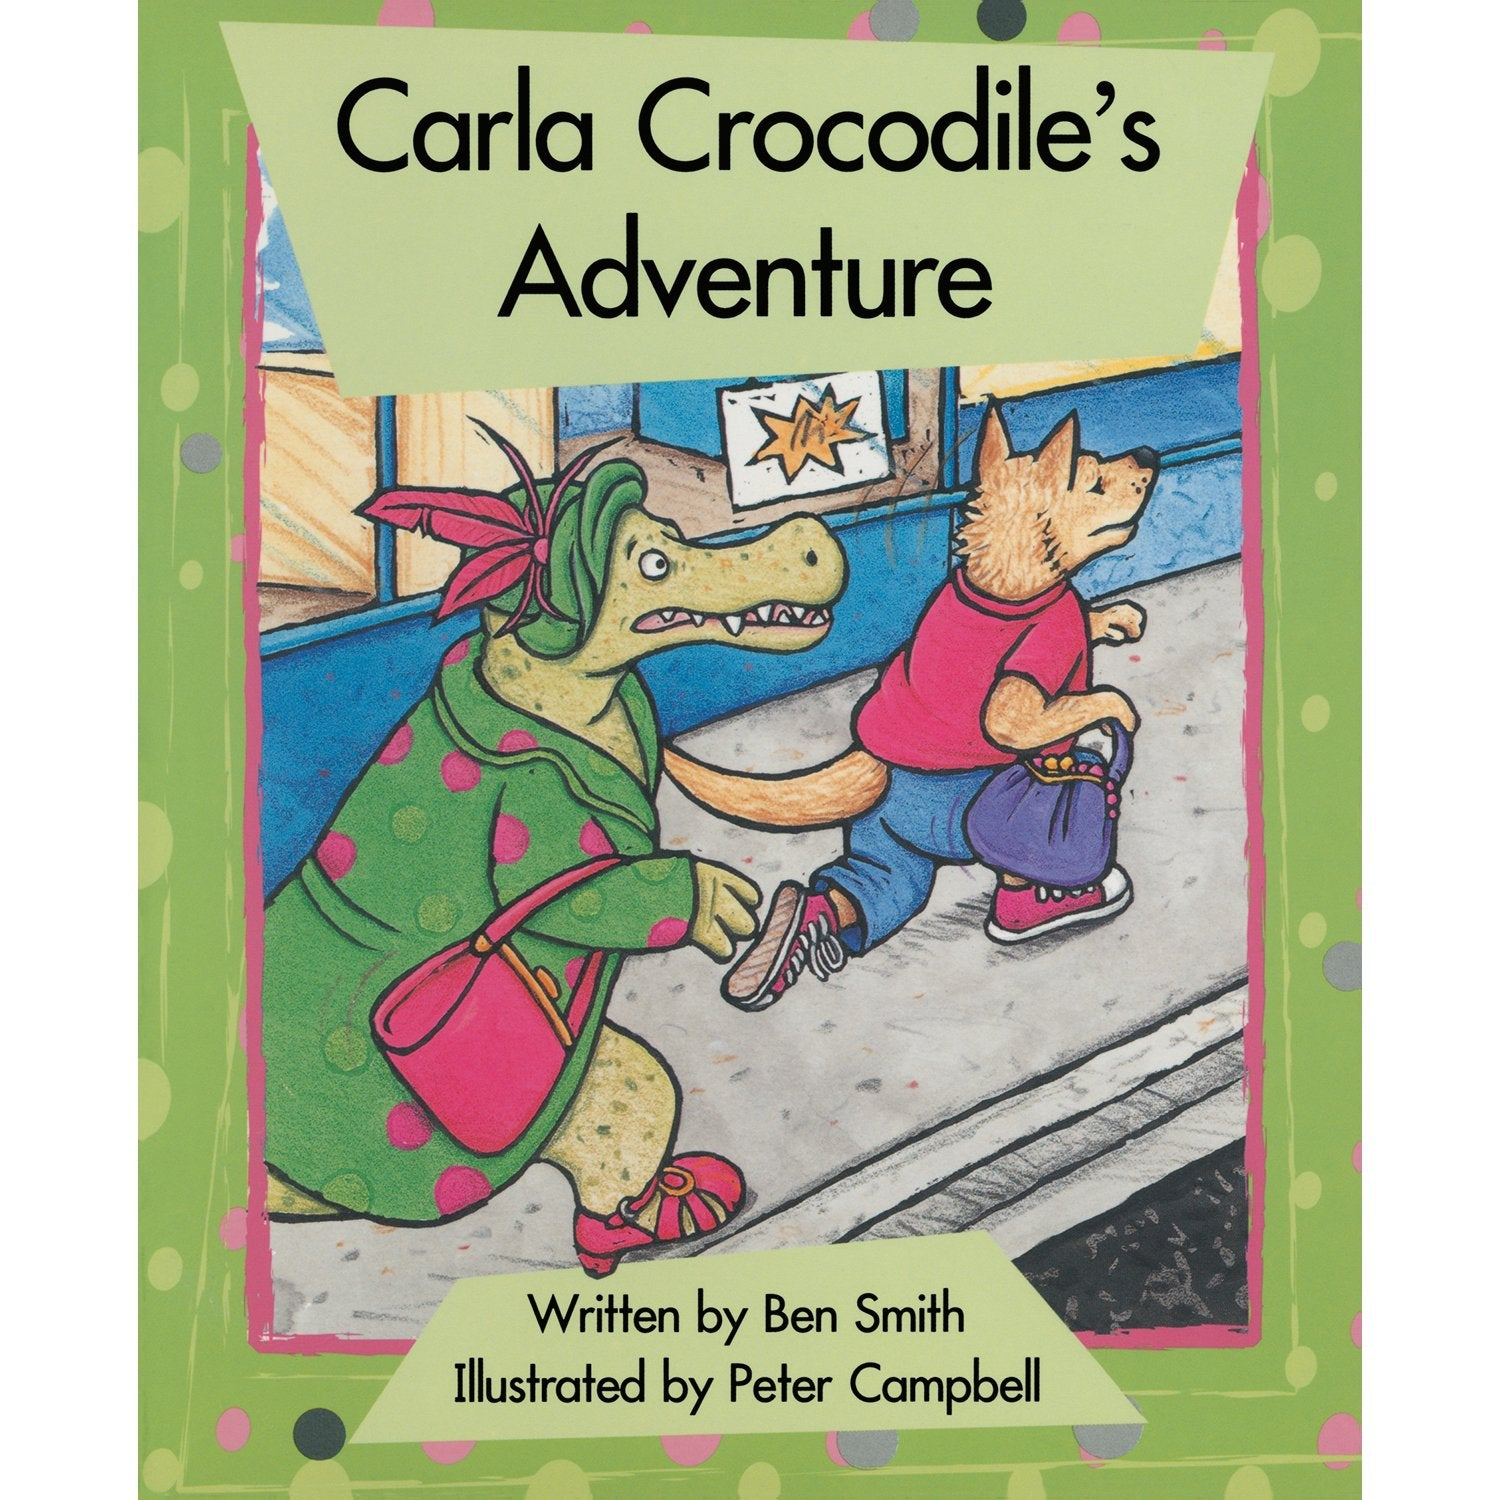 Carla Crocodile's Adventure